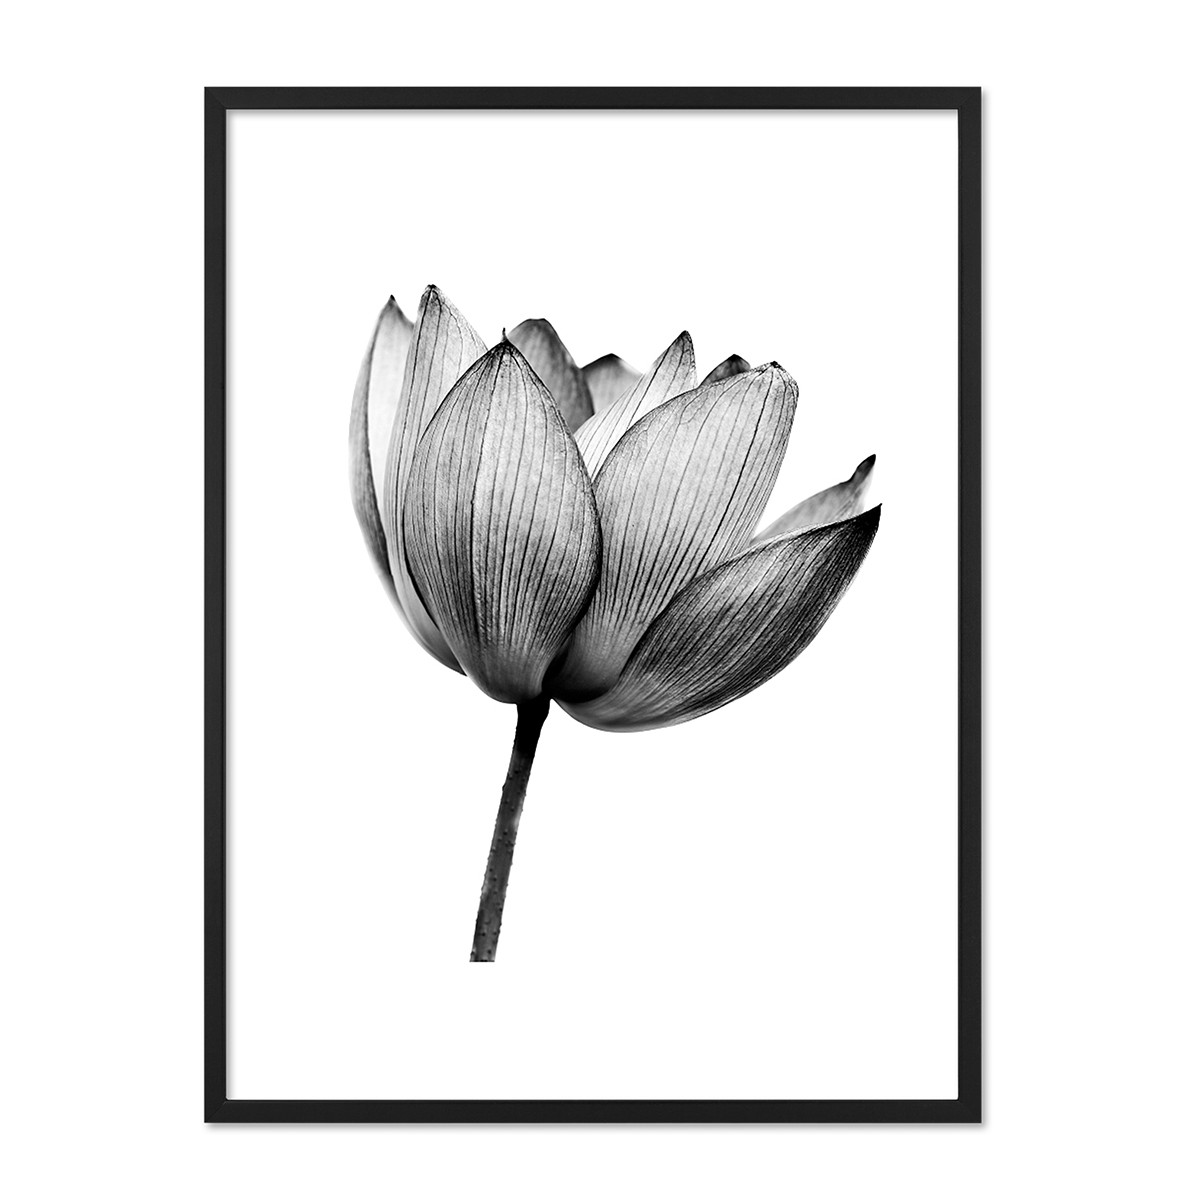 design poster mit bilderrahmen schwarz 39 lotus 39 30x40 cm schwarz weiss motiv natur lotosblume. Black Bedroom Furniture Sets. Home Design Ideas